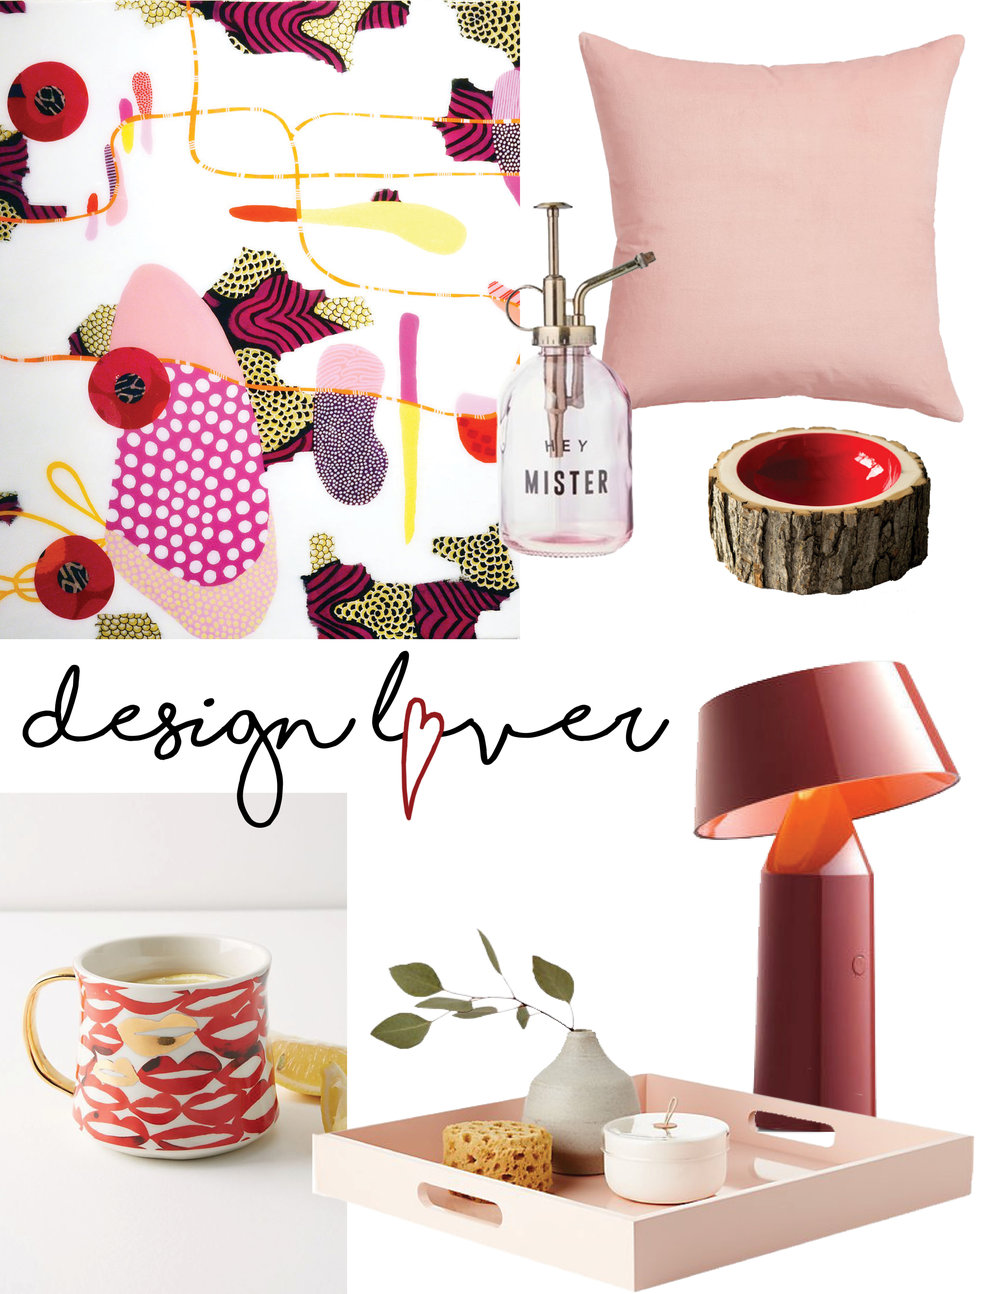 Valentine's Day, Gift Ideas for the Design Lover, Nyla Free Designs, Calgary Interior Designer